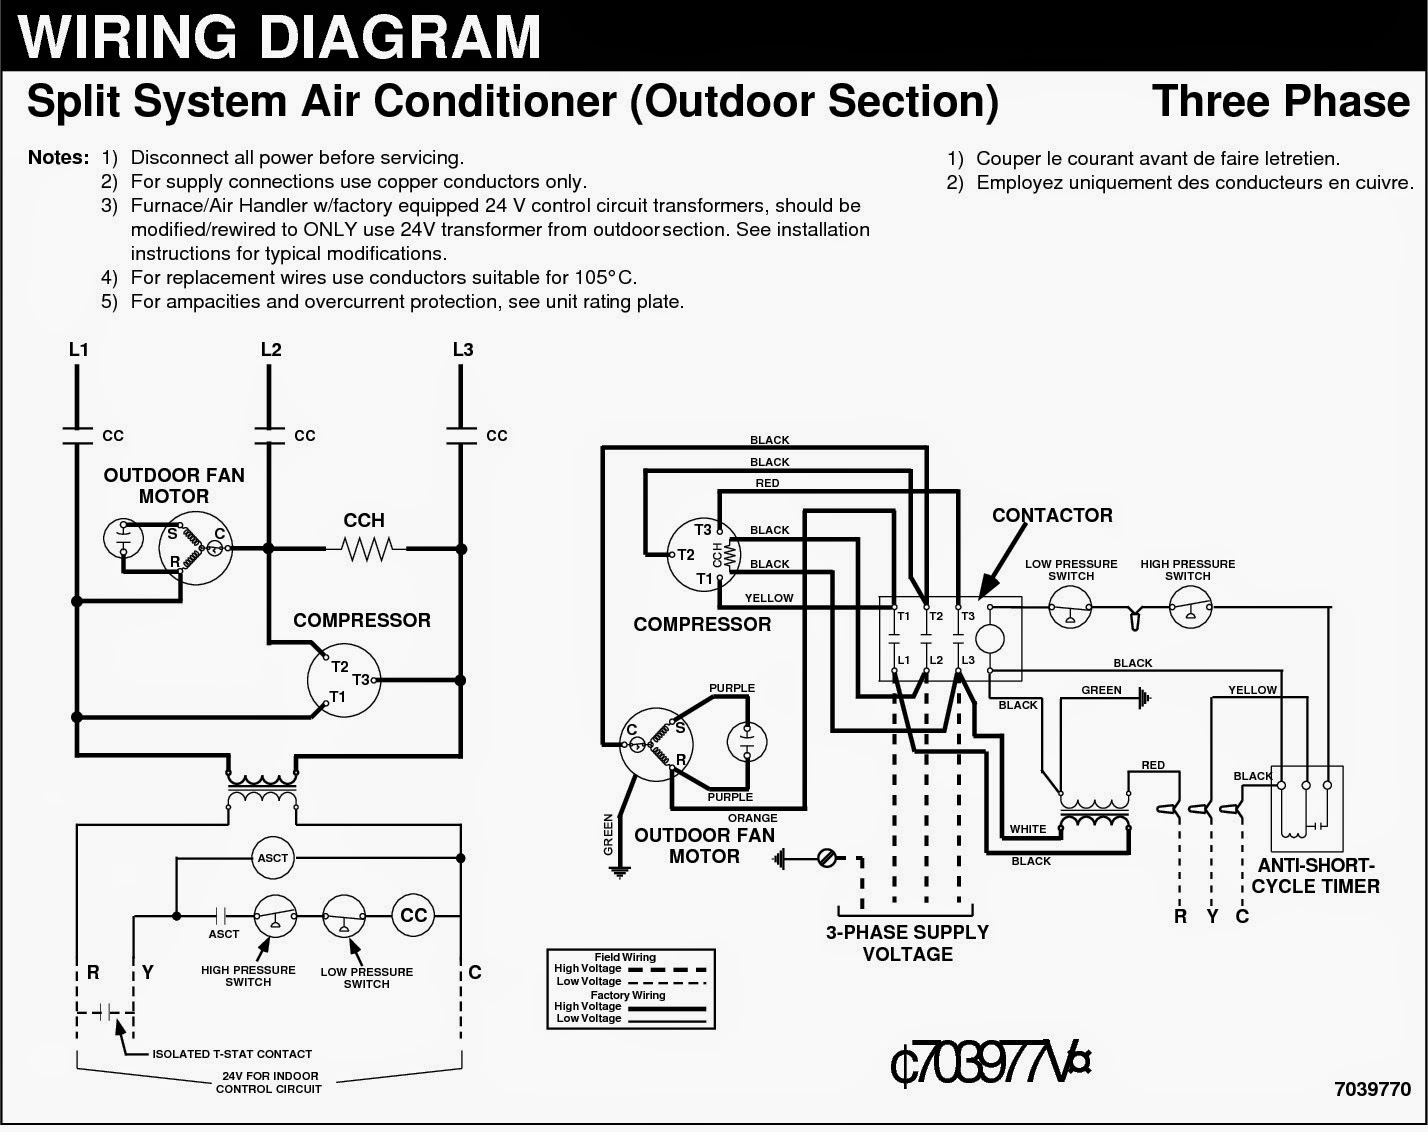 3+phase electrical wiring diagrams for air conditioning systems part two 3 phase motor starter wiring diagram pdf at reclaimingppi.co